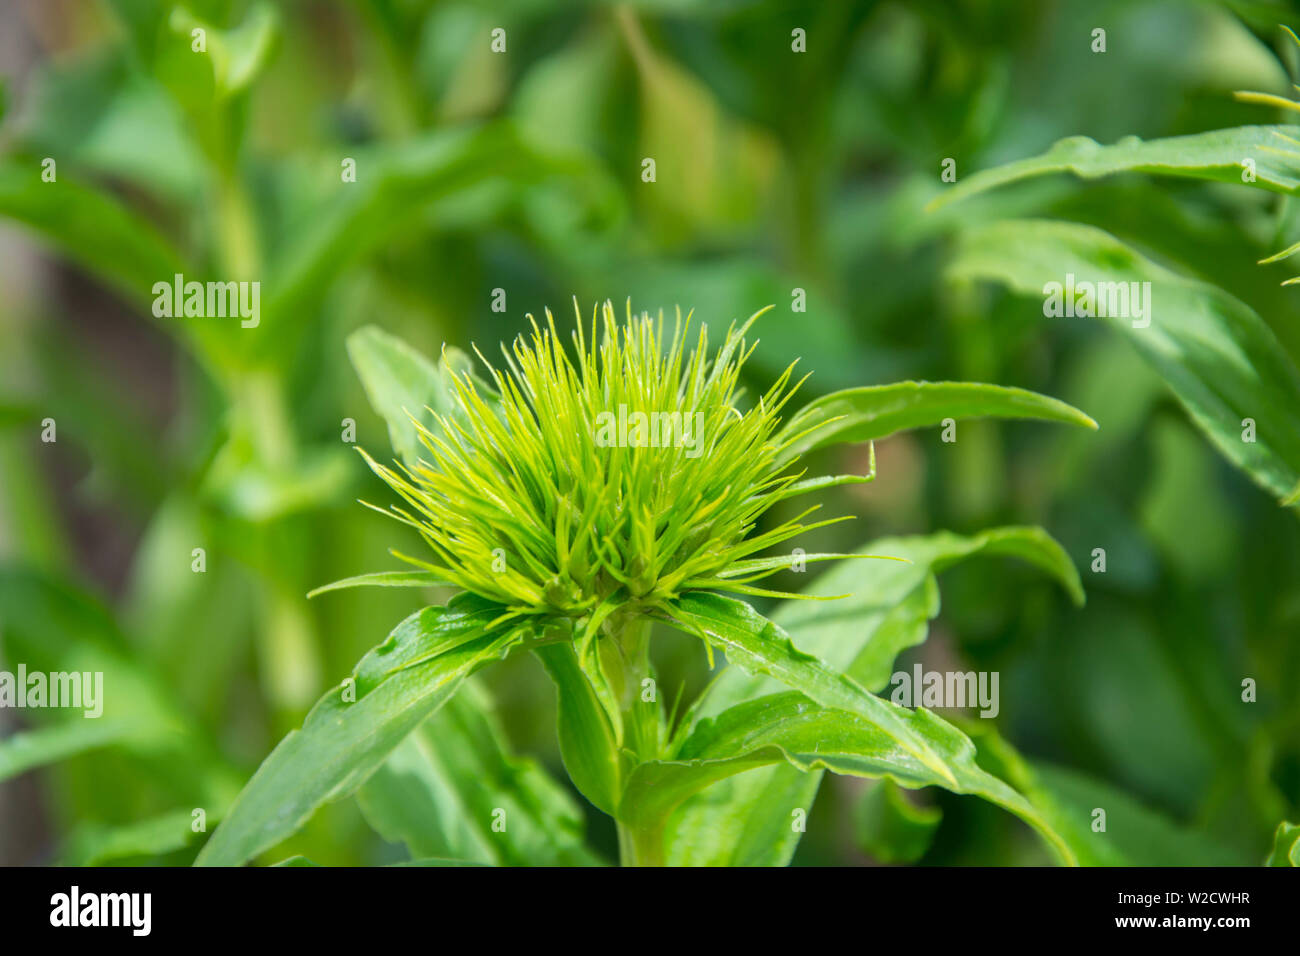 Dianthus barbatus flowers starting to bloom, green flower buds with sharp thin leaves, springtime garden - Sweet-williams - Caryophyllaceae - Stock Image